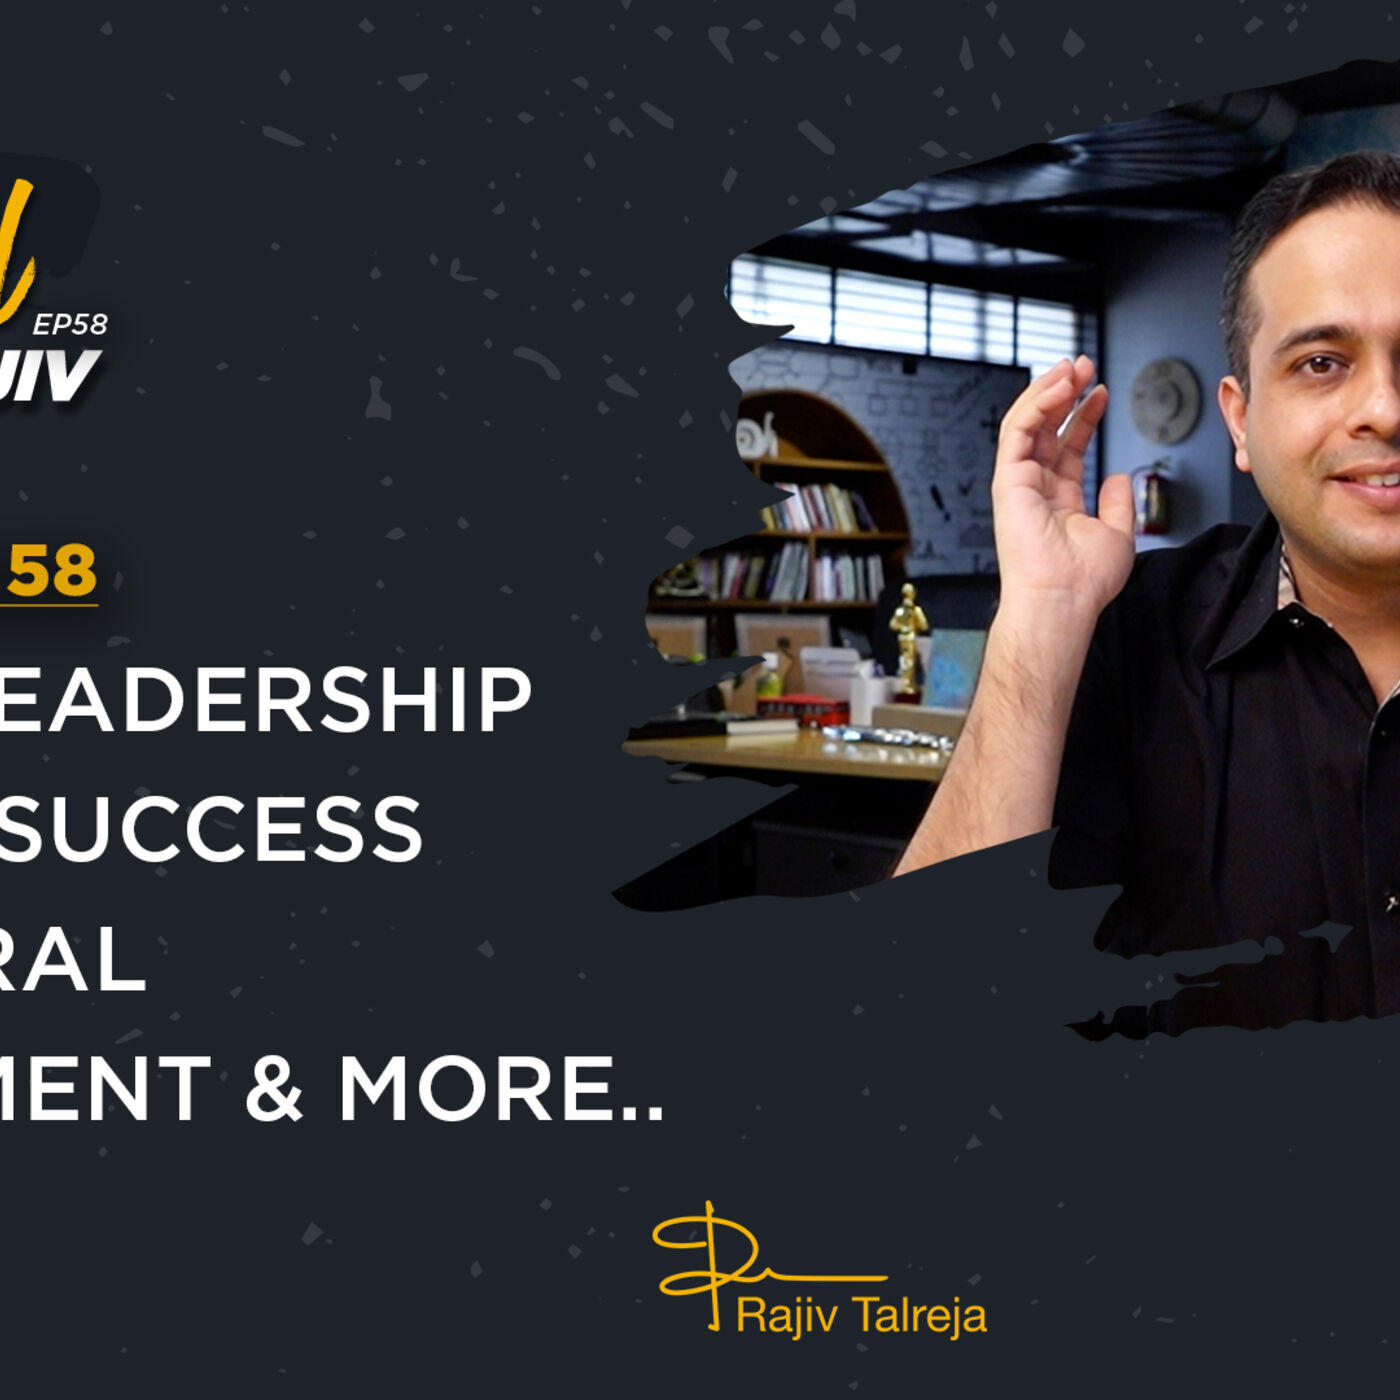 Lazy Leadership | Messy Success | Cultural Alignment & Much More. | Get Real with Rajiv - Episode 58